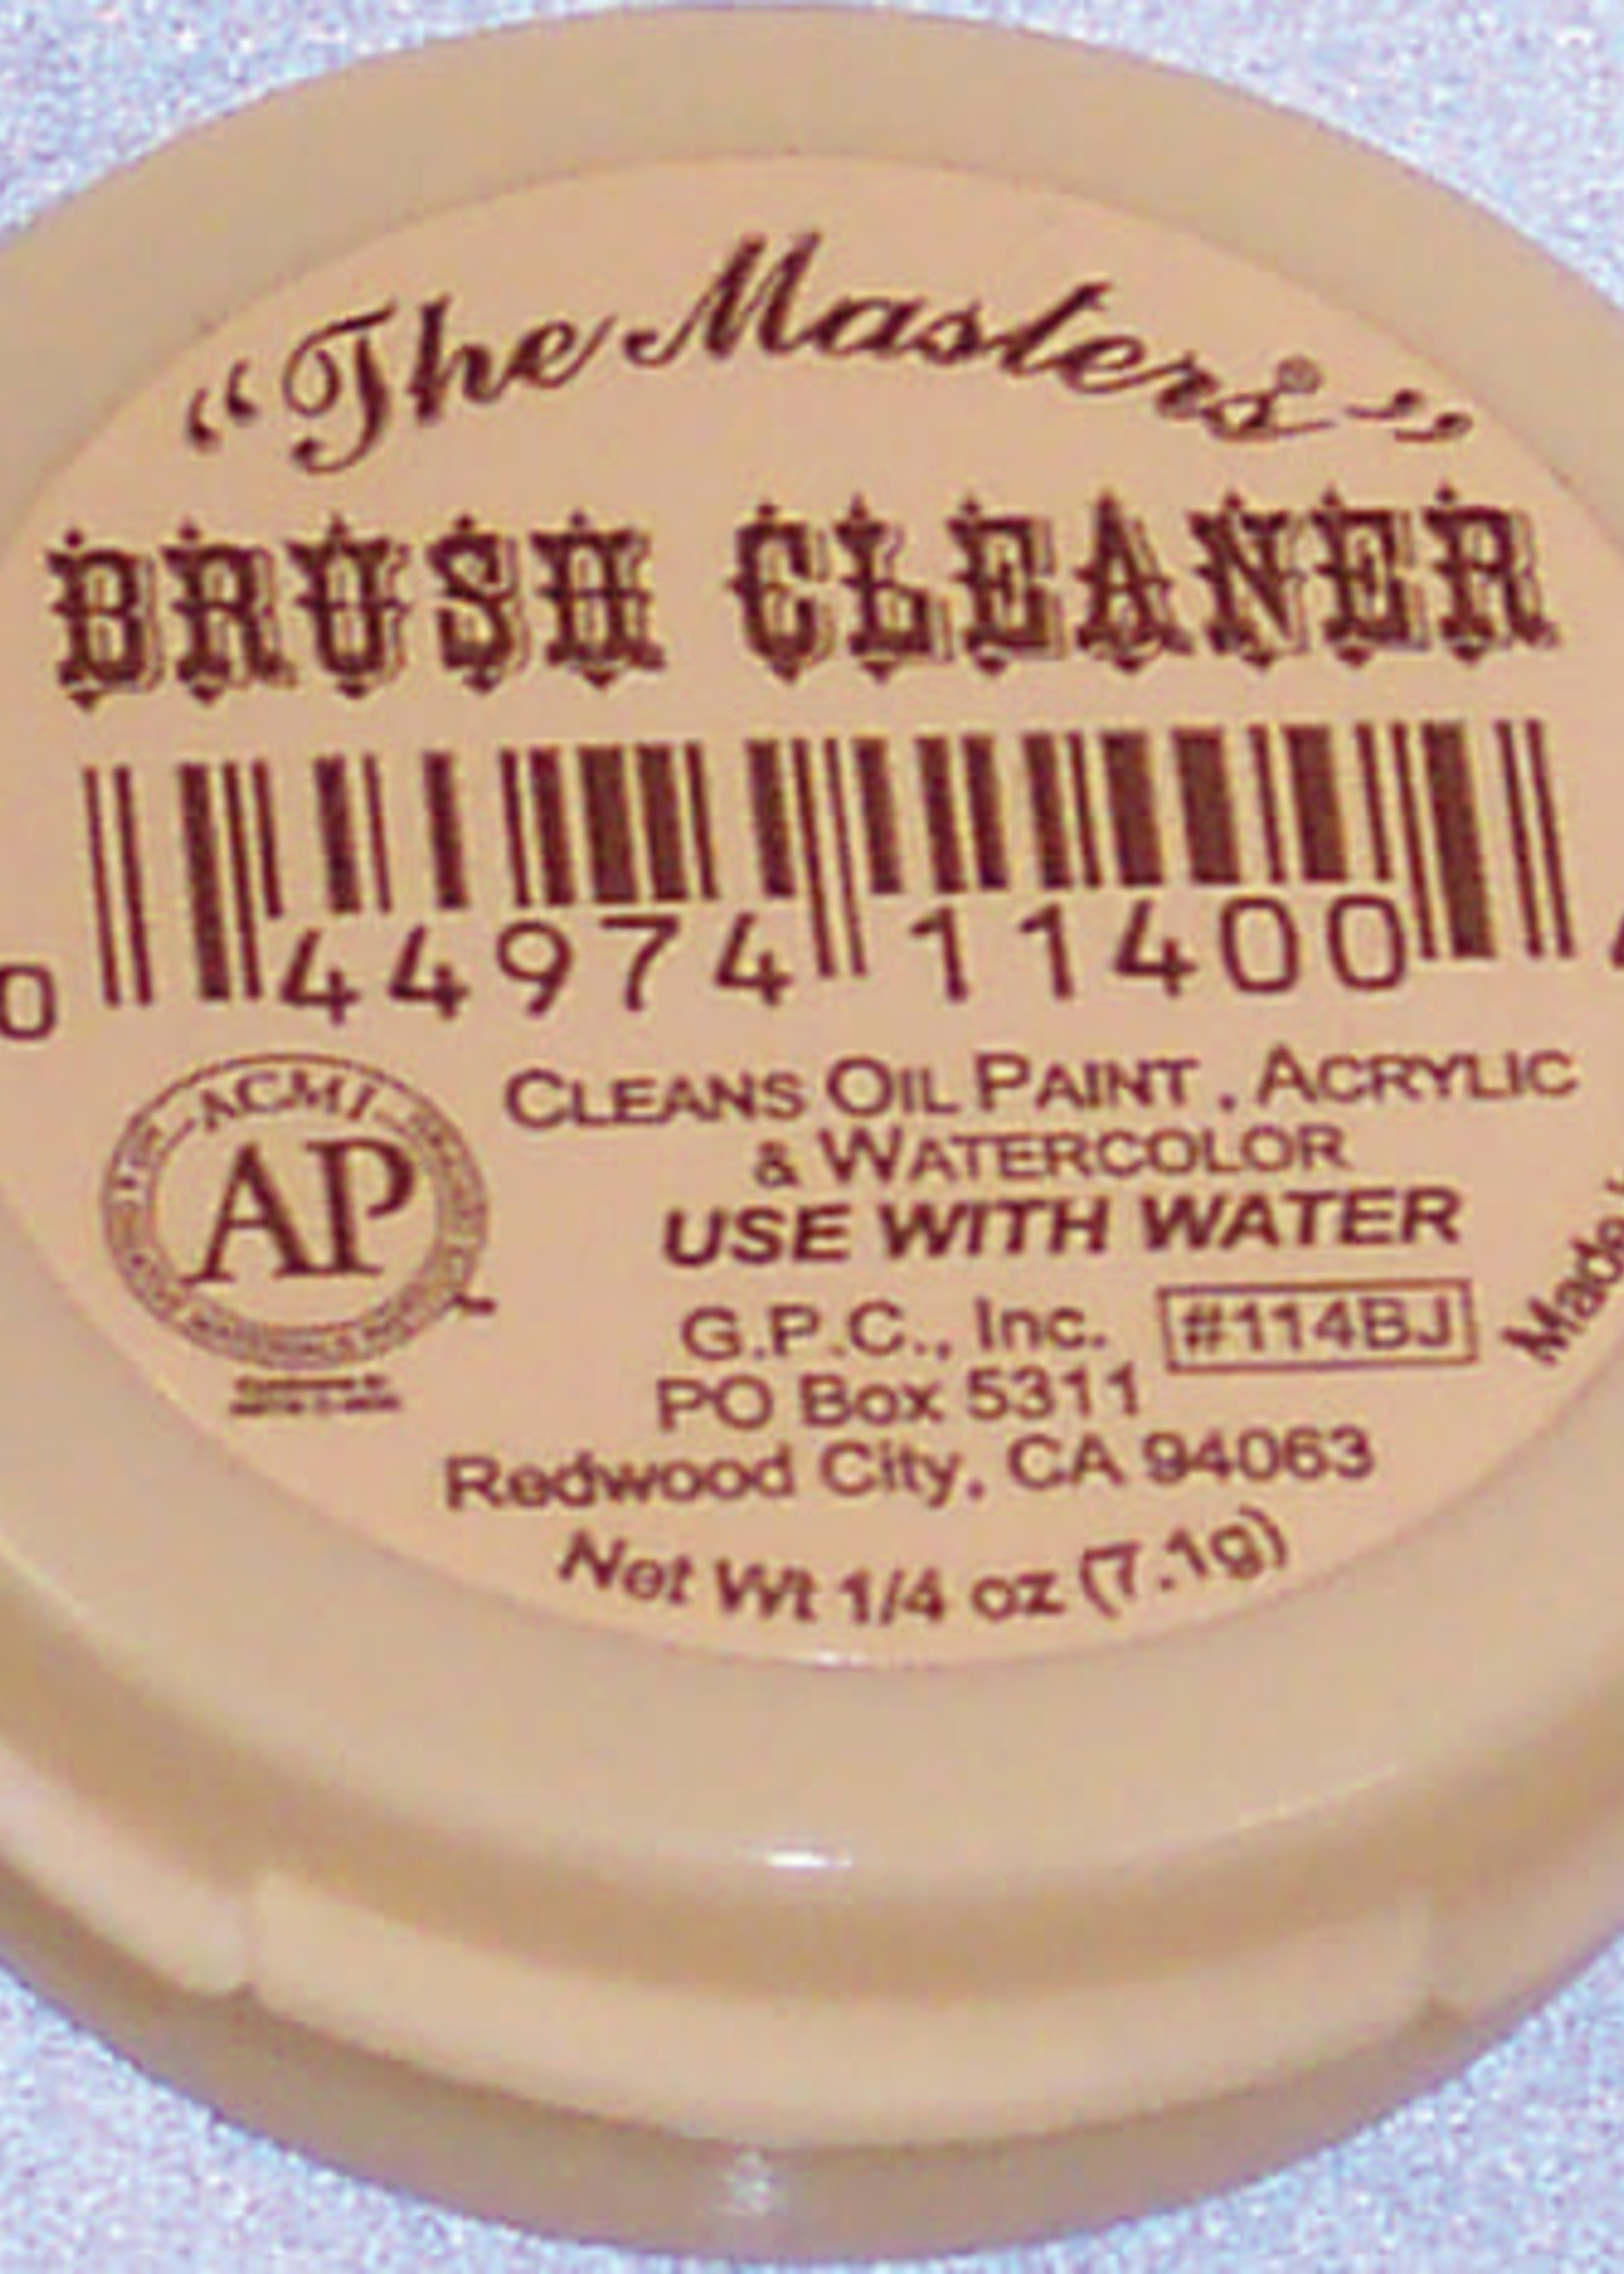 GENERAL PENCIL CO., INC. BJ MASTERS BRUSH CLEANER AND PRESERVER